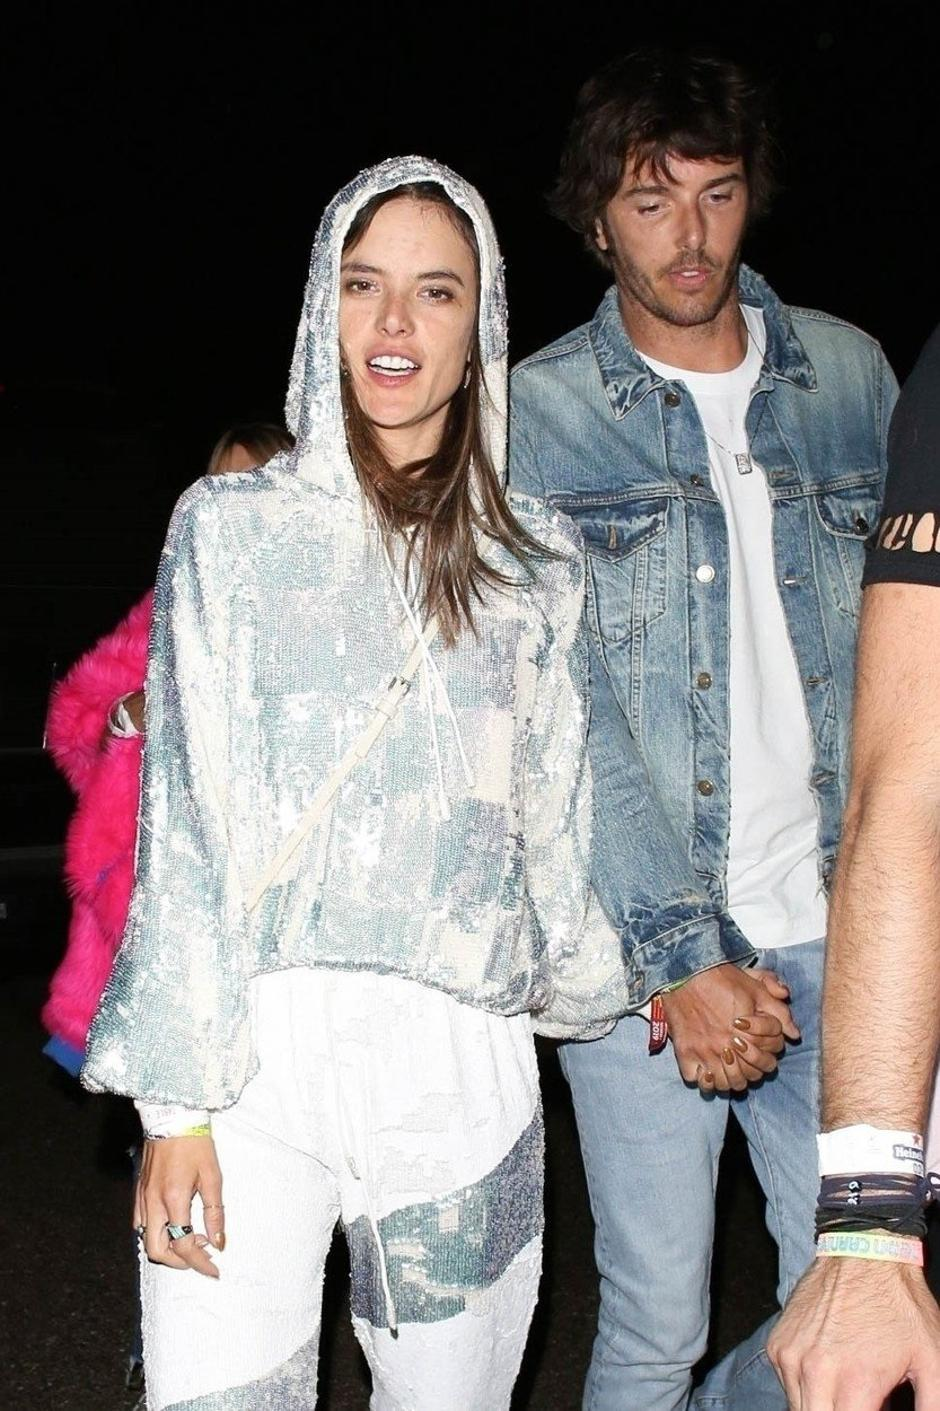 Alessandra Ambrosio and Boyfriend exit  Coachella's party the Neon Carnival | Autor: GICA, SARA